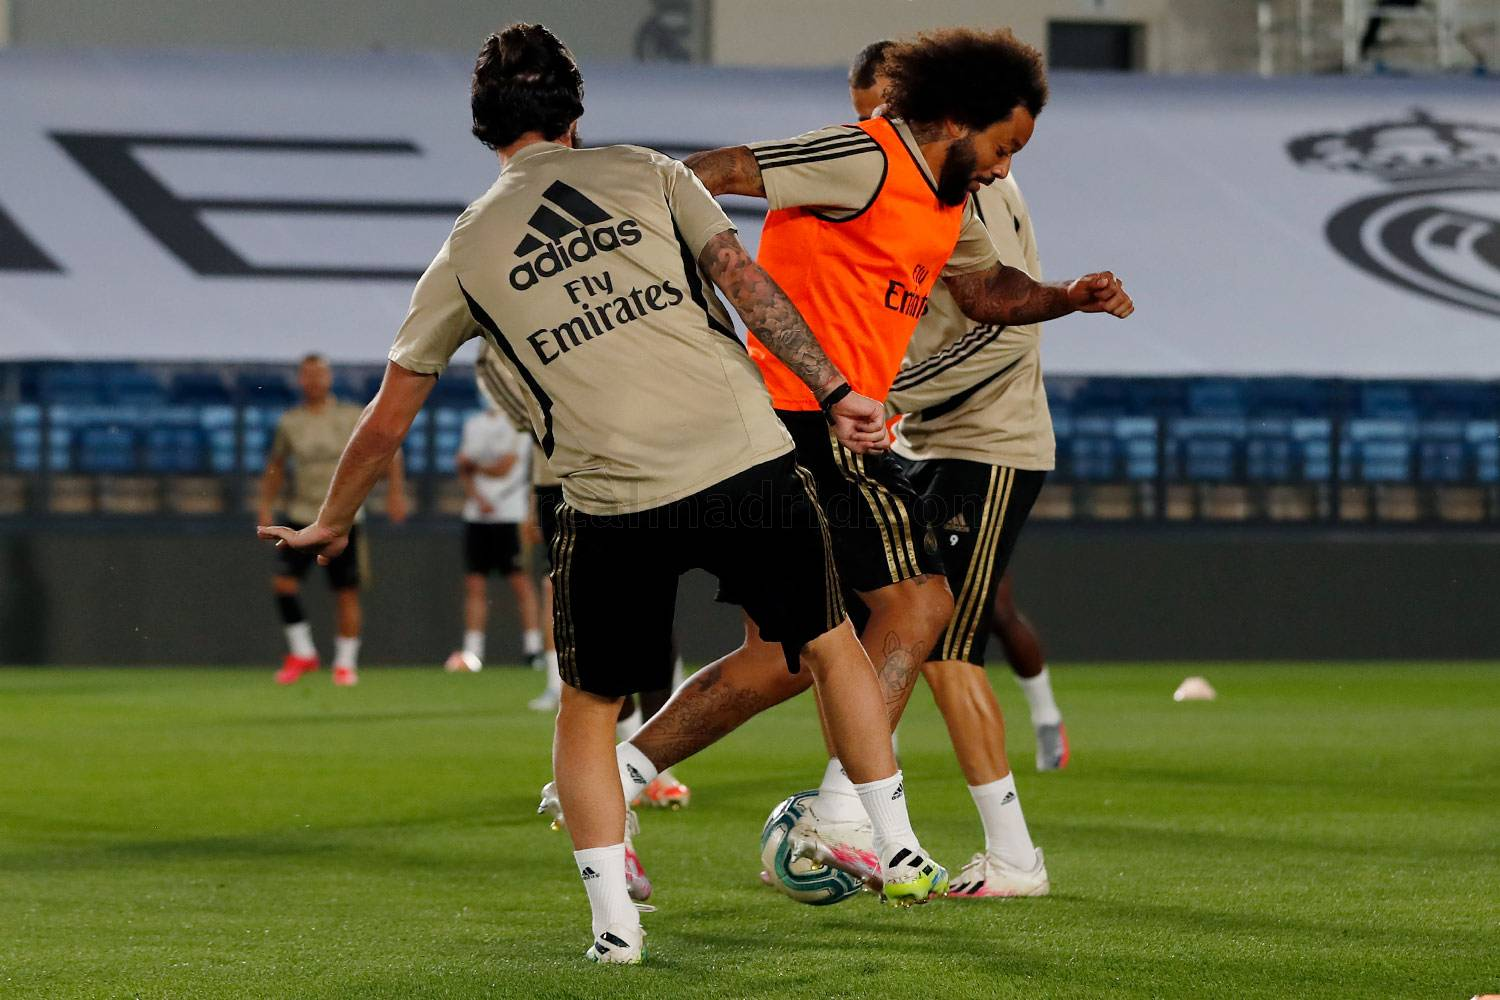 Real Madrid - Entrenamiento del Real Madrid  - 17-06-2020